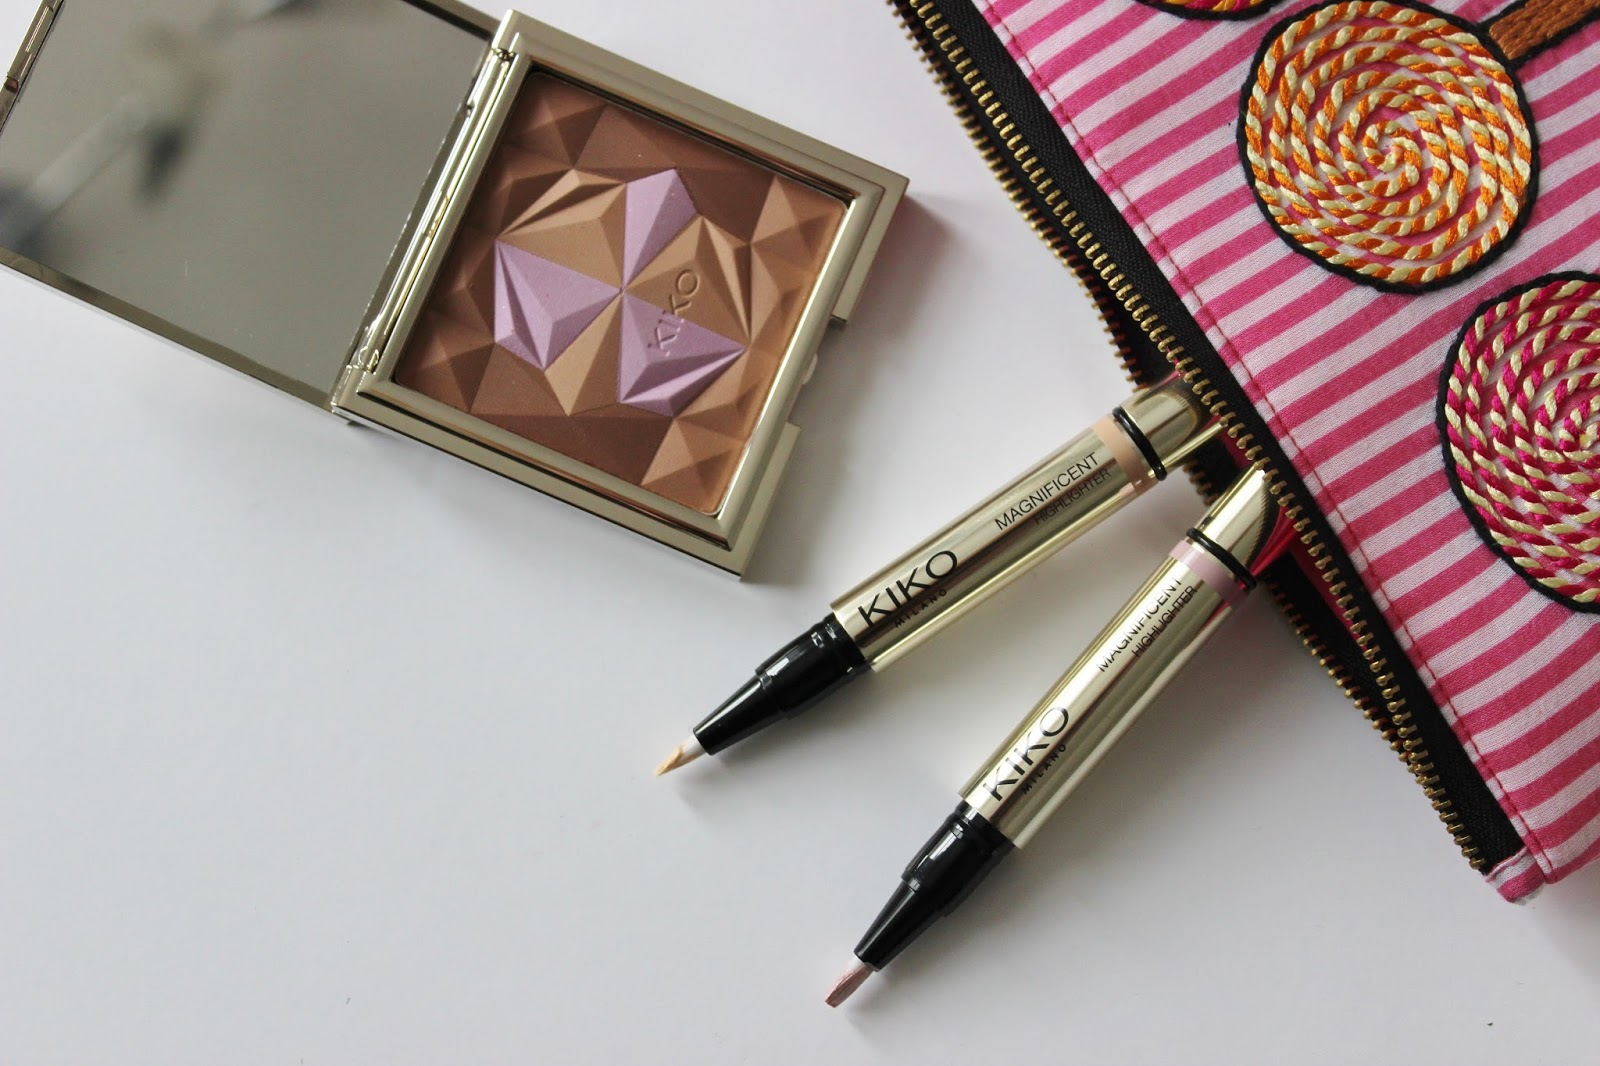 Kiko luxurious collection